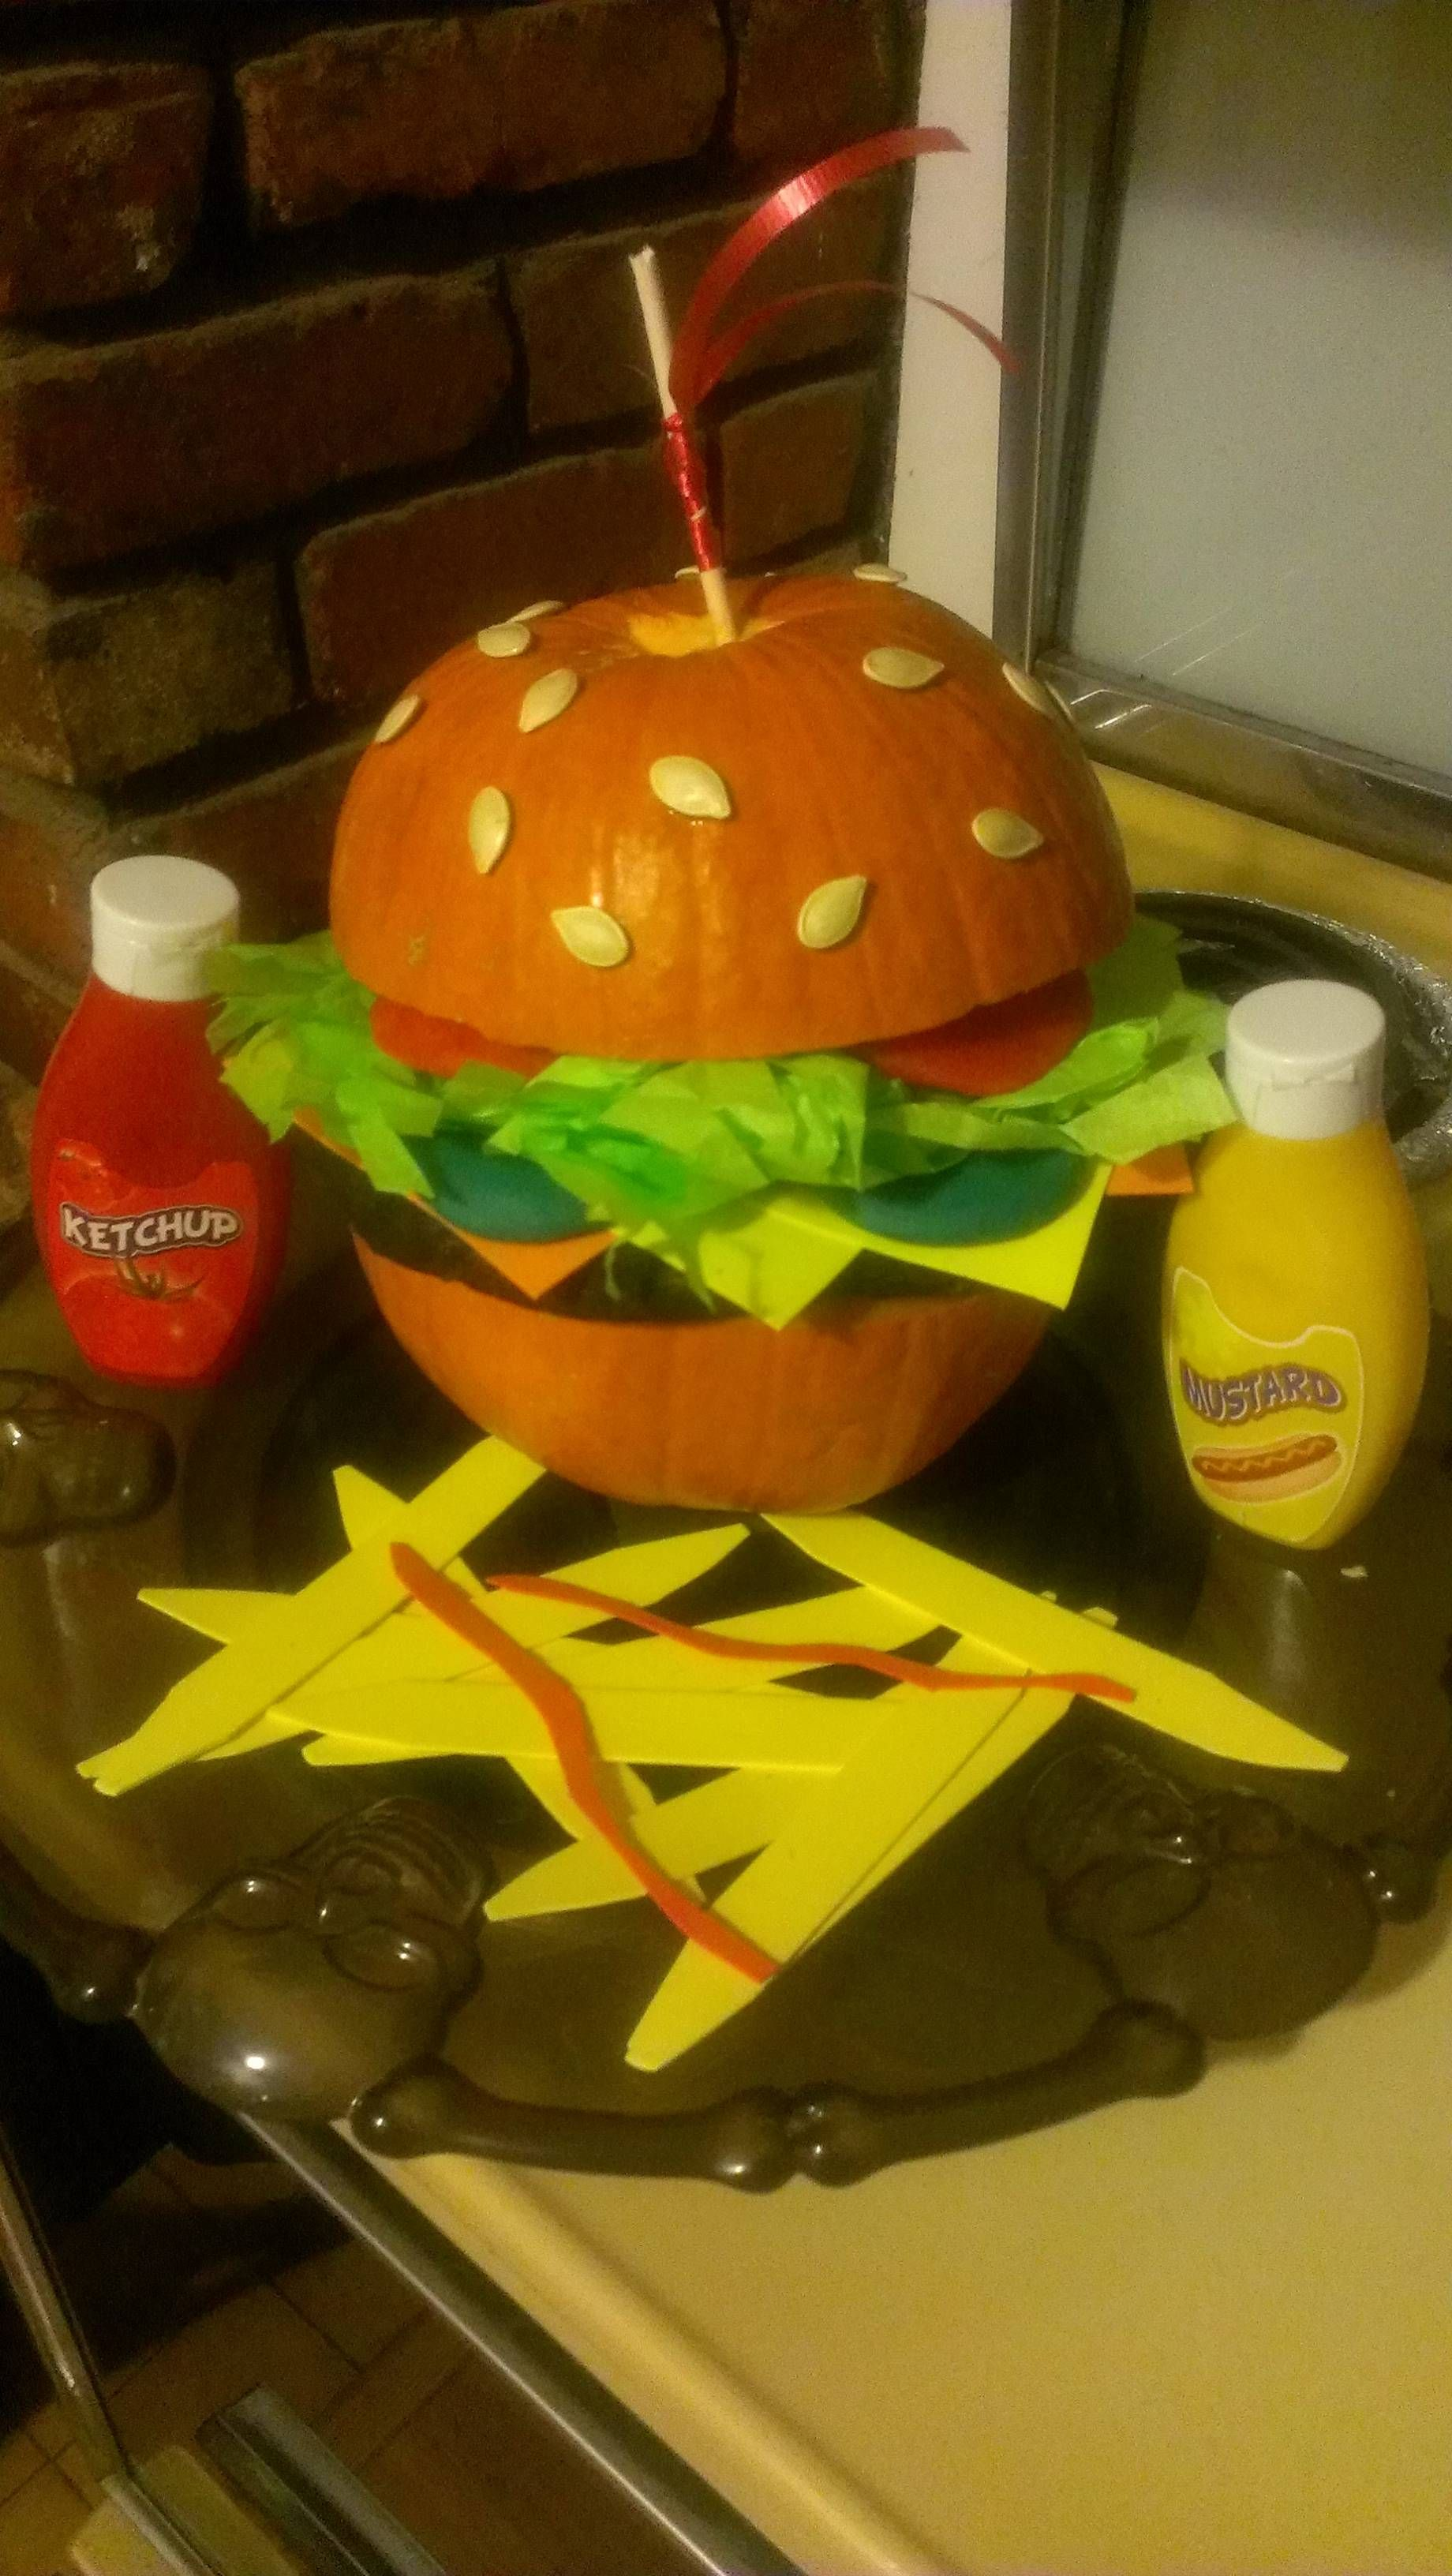 Award-winning Pumpkin Burger | Pumpkin decorating contest, Pumpkin ...